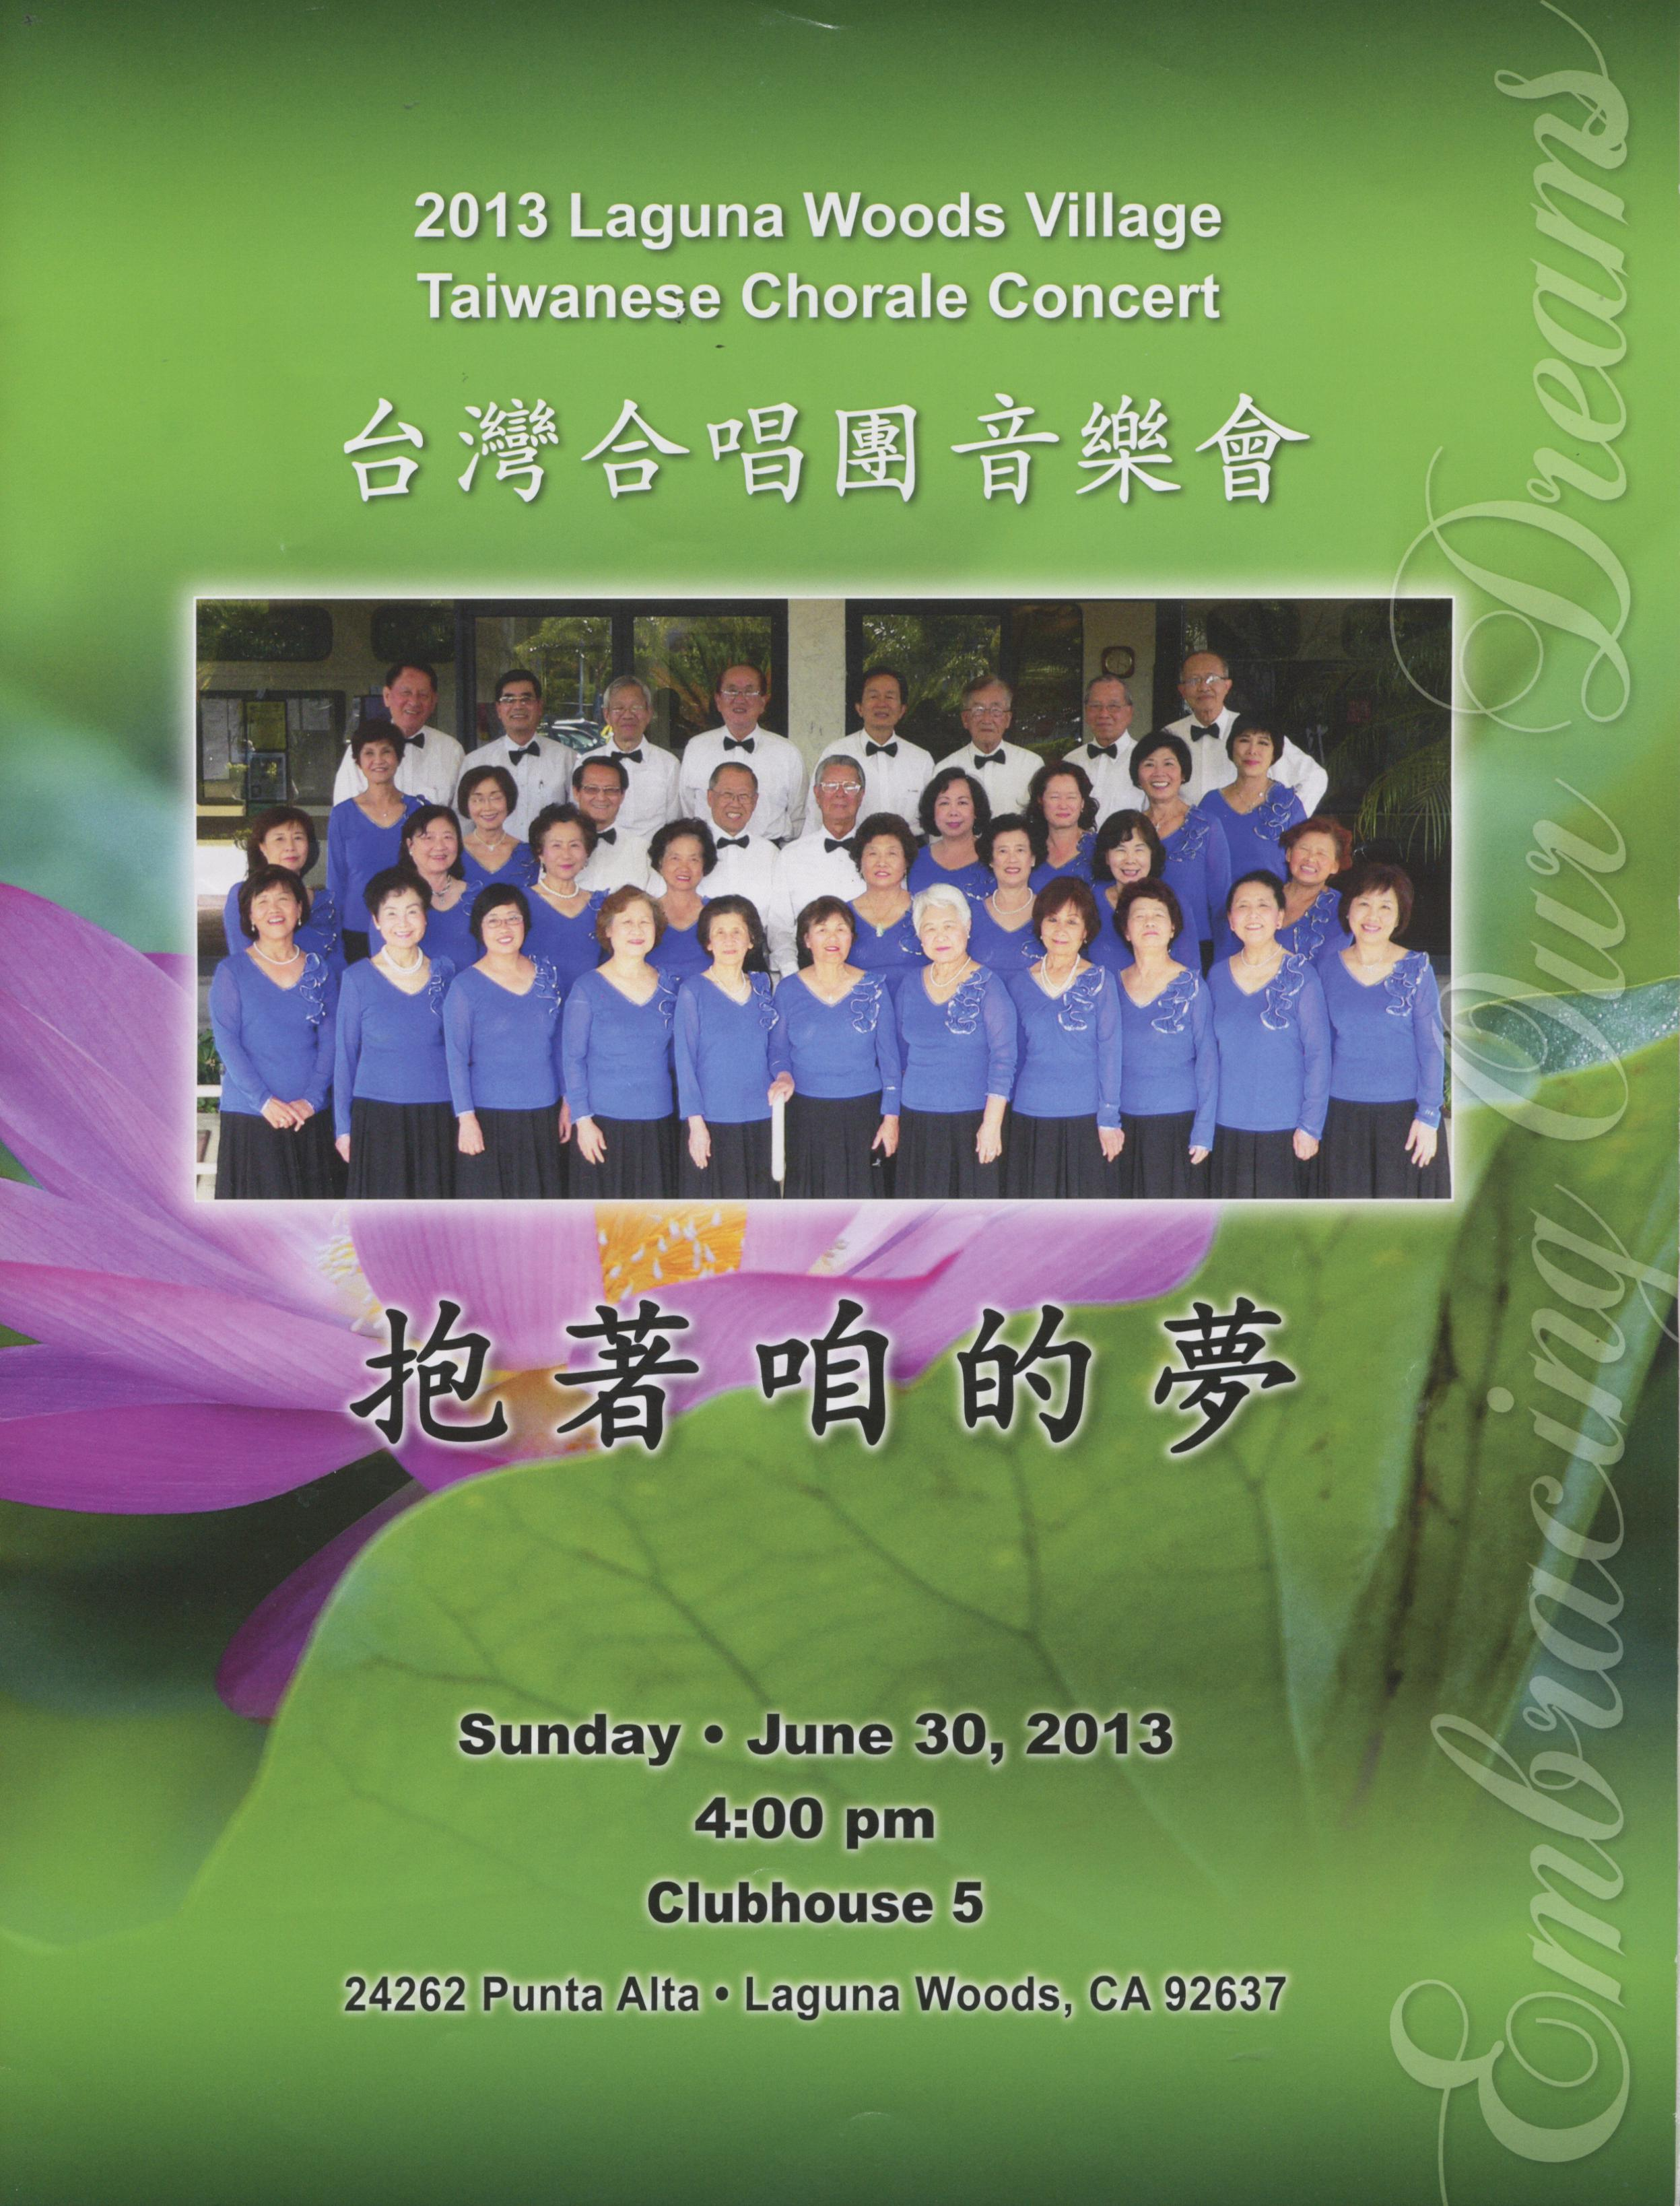 26. 抱著咱的夢(2013 Laguna Woods Village Taiwanese Chorale Concert 台灣合唱團音樂會) by Laguna Woods Village Taiwanese Club, Laguna Woods, CA on 06/30/2013